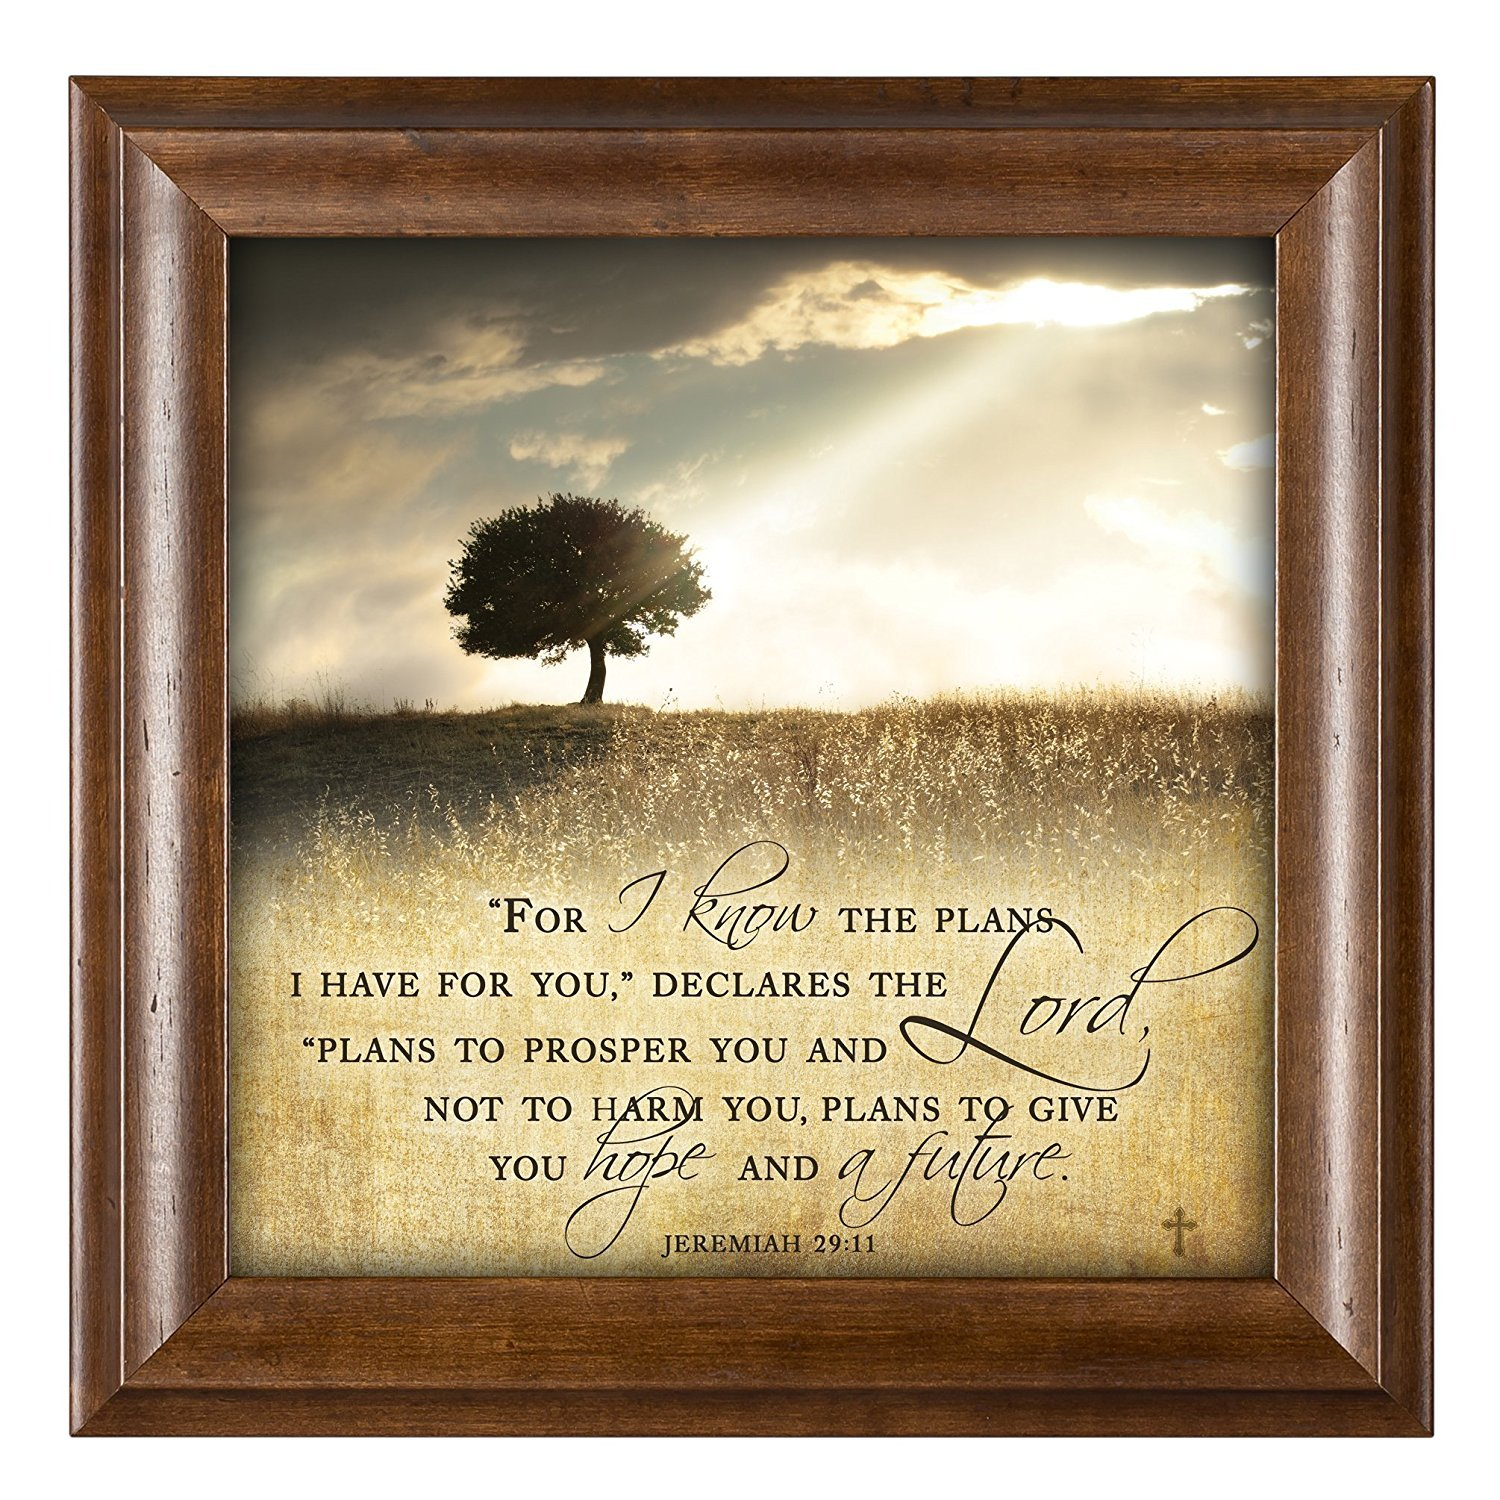 Amazon.com: For I know the Plans I Have For You Jeremiah 29:11 12 x ...